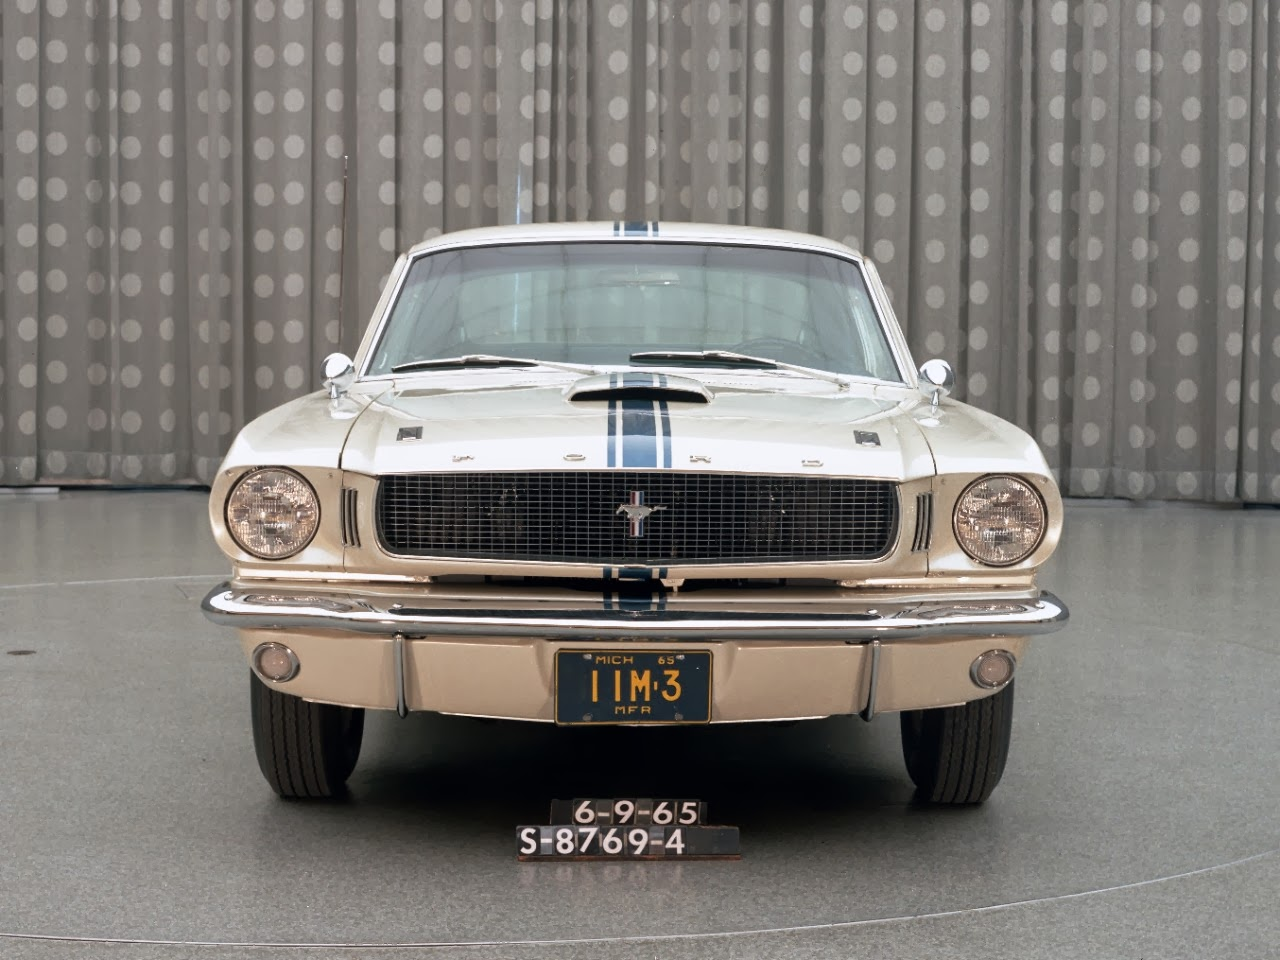 Virginia Classic Mustang Blog Check Out This Cool Edsel 1964 Ford Fastback Iis Christmas And Birthday Gift A Specially Modified 1965 Image Courtesy Of Motor Company